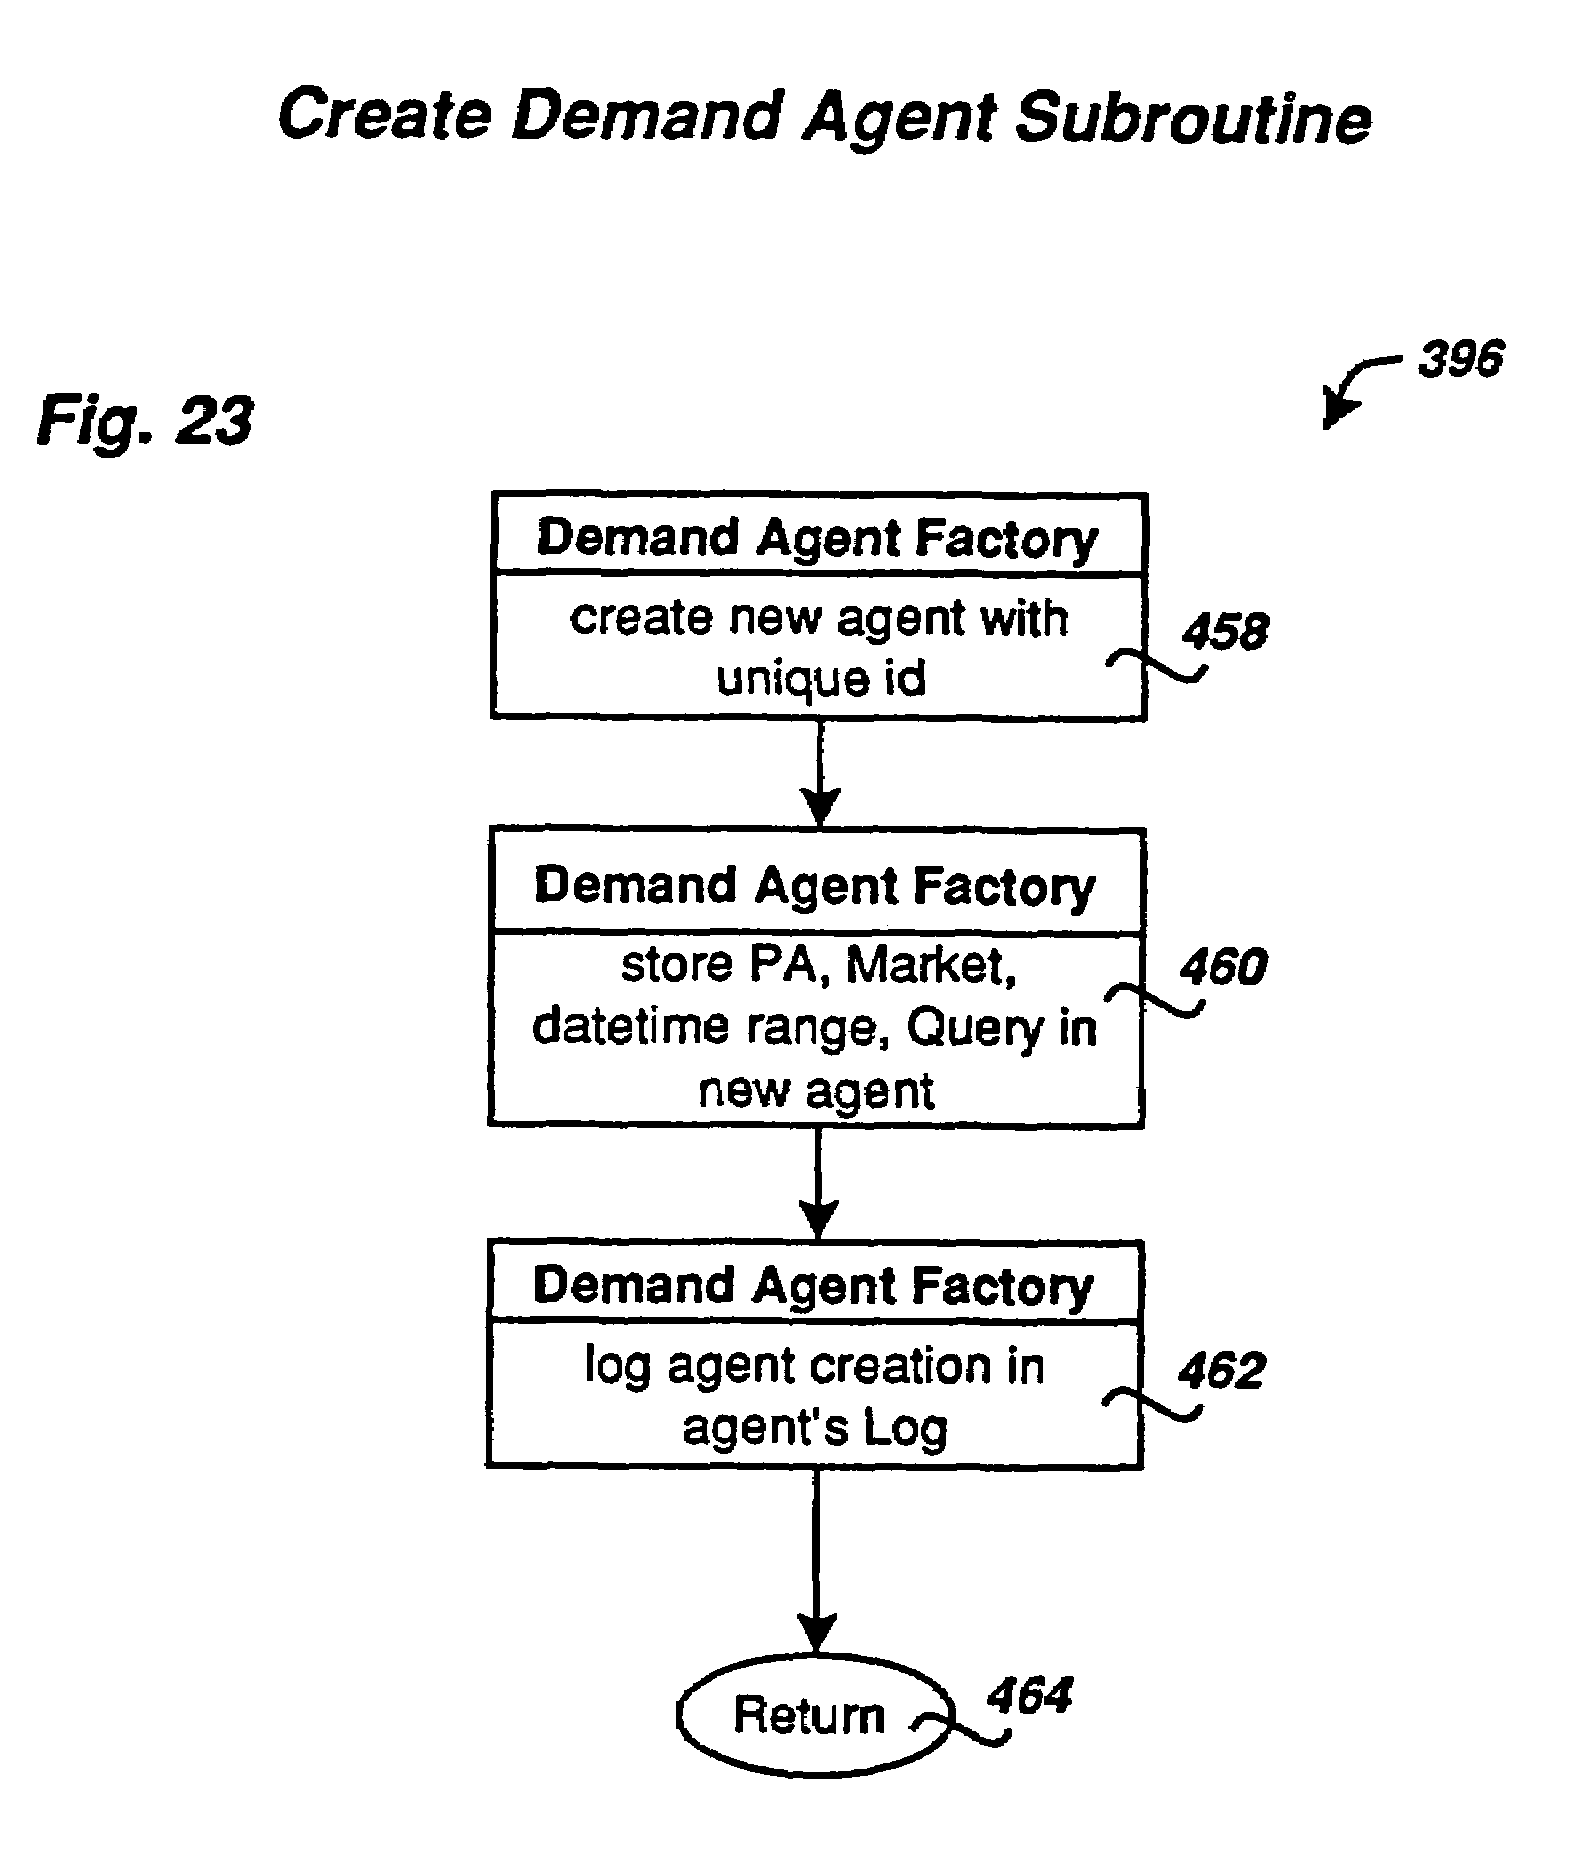 intelligent agents e commerce Abstract agent-based economy or agent-based electronic commerce is the term for describing one of possible next steps of electronic commerce the systematic understanding of the agent-based economy is important for researchers to develop practical intelligent agent systems, and for current electronic commerce industries to cope with the challenges of the intelligent agents.